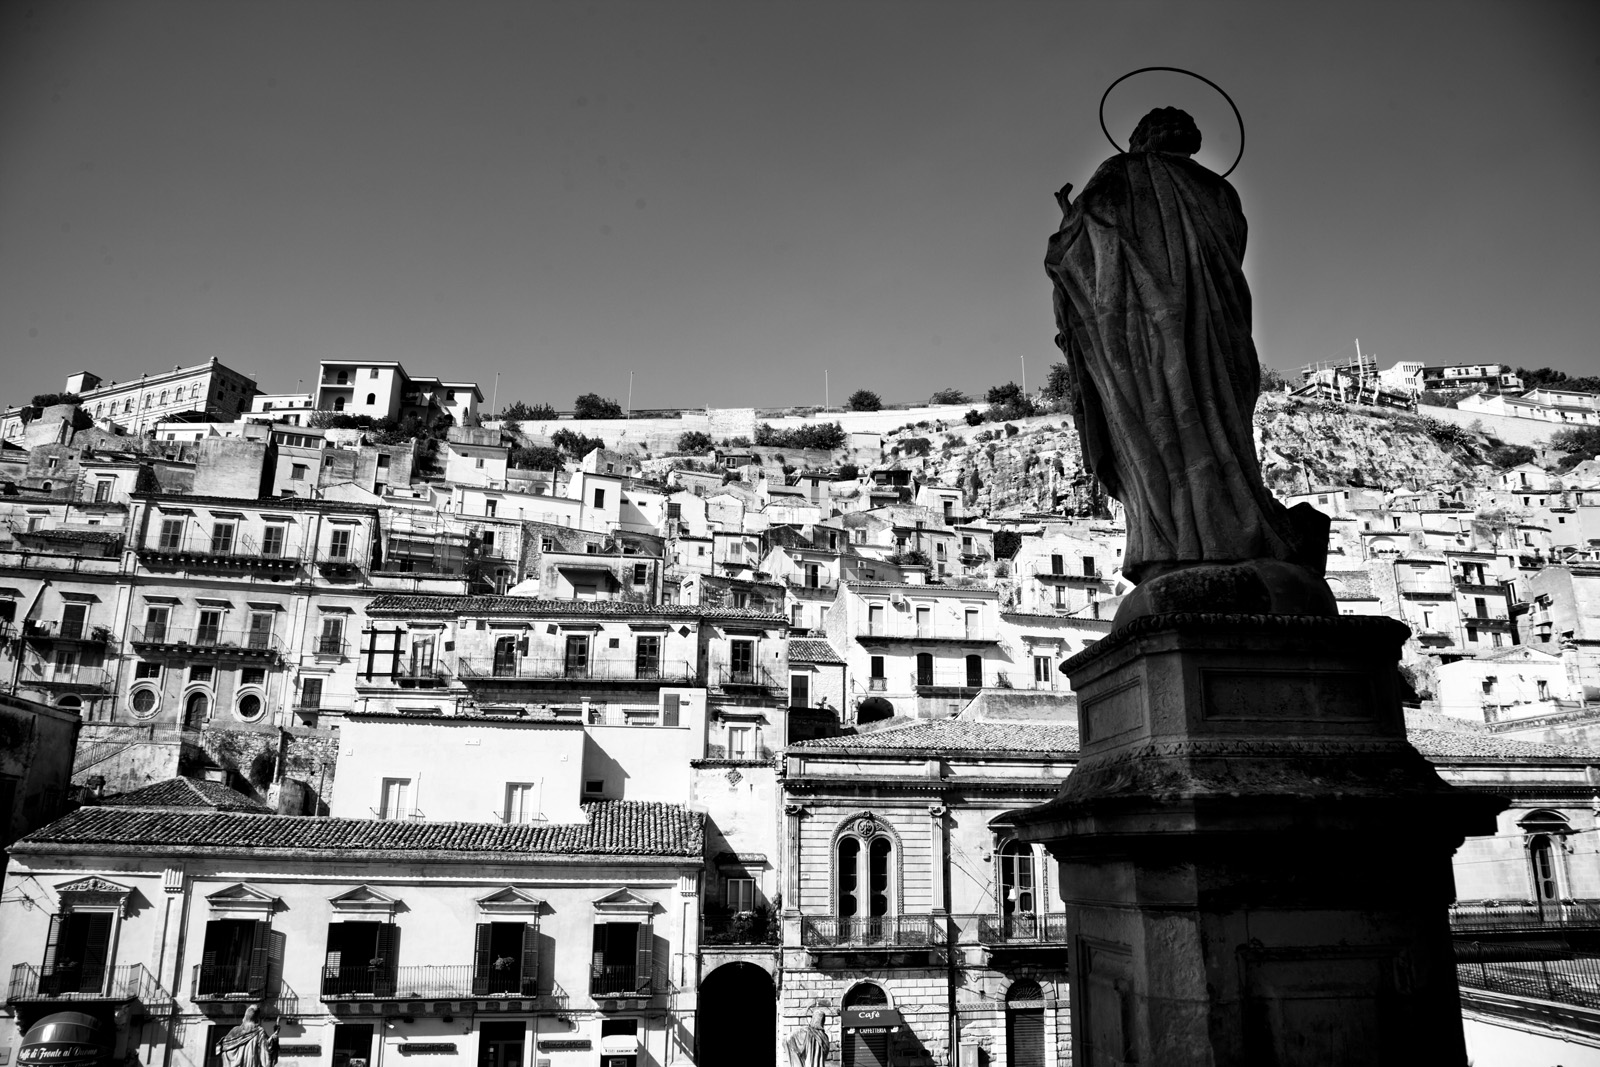 Modica from the Duomo